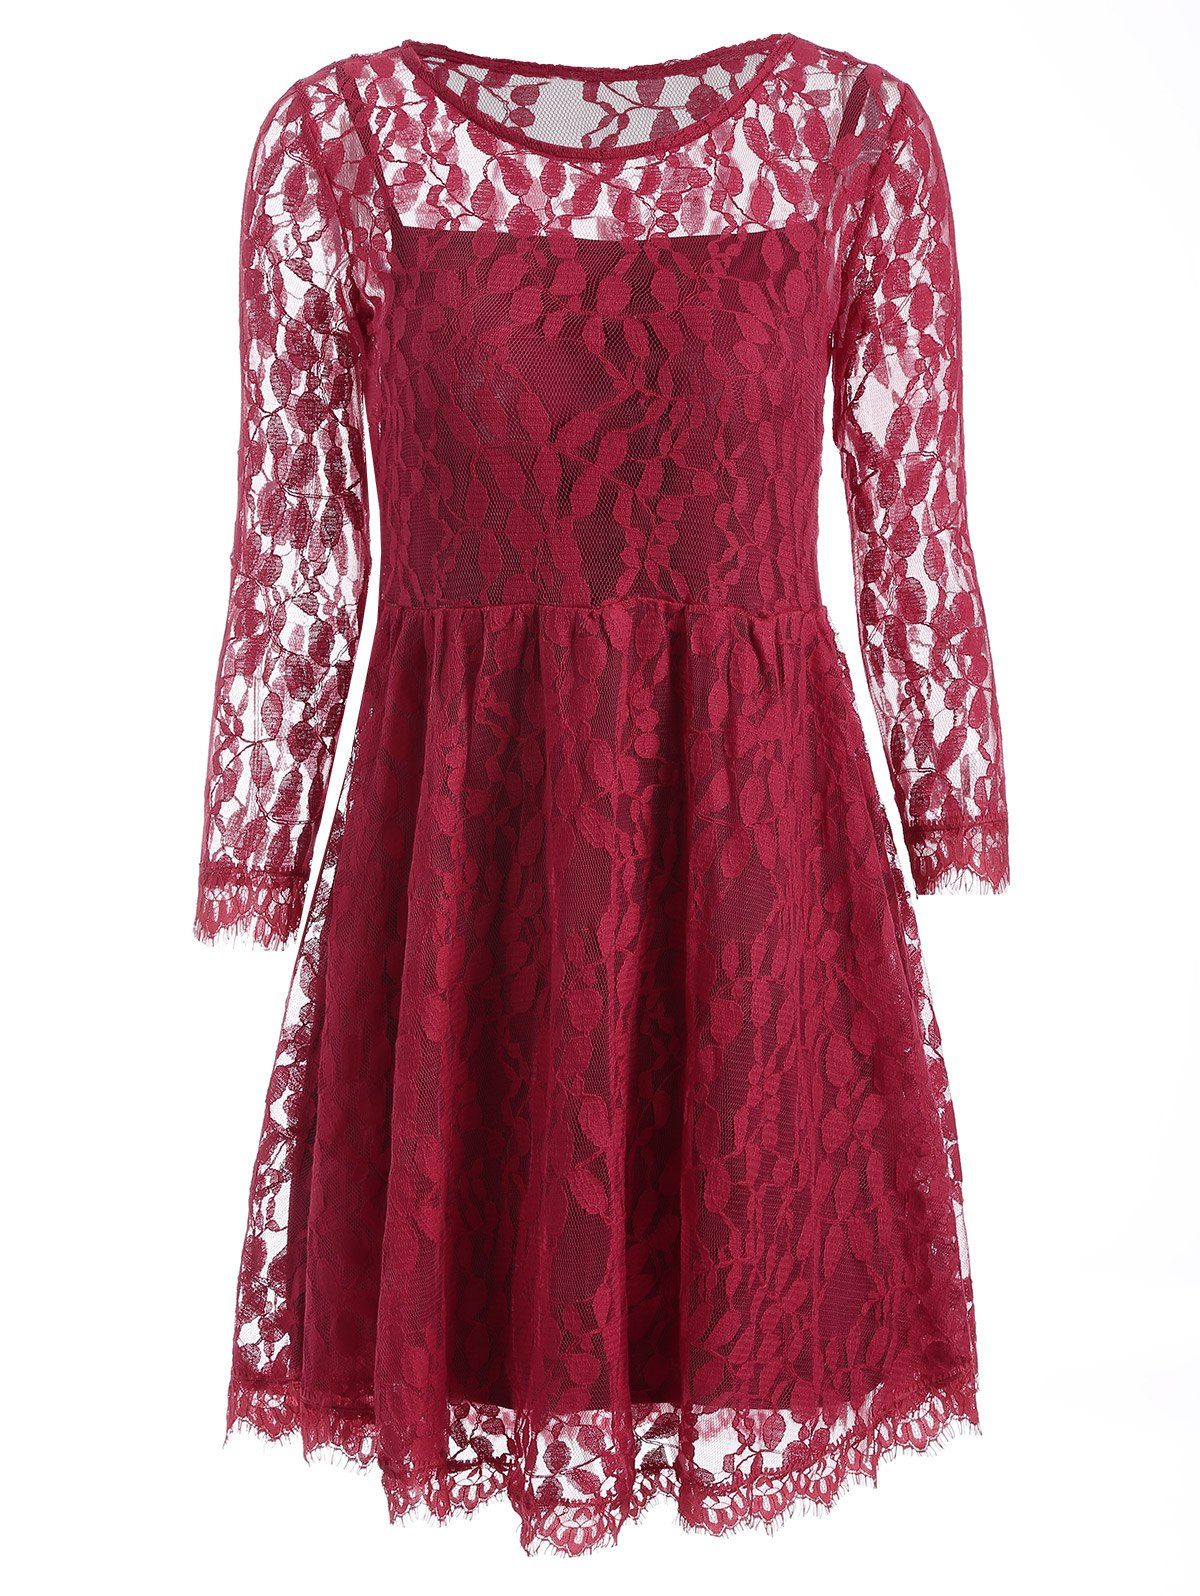 Cami Dress and A-Line Lace Dress